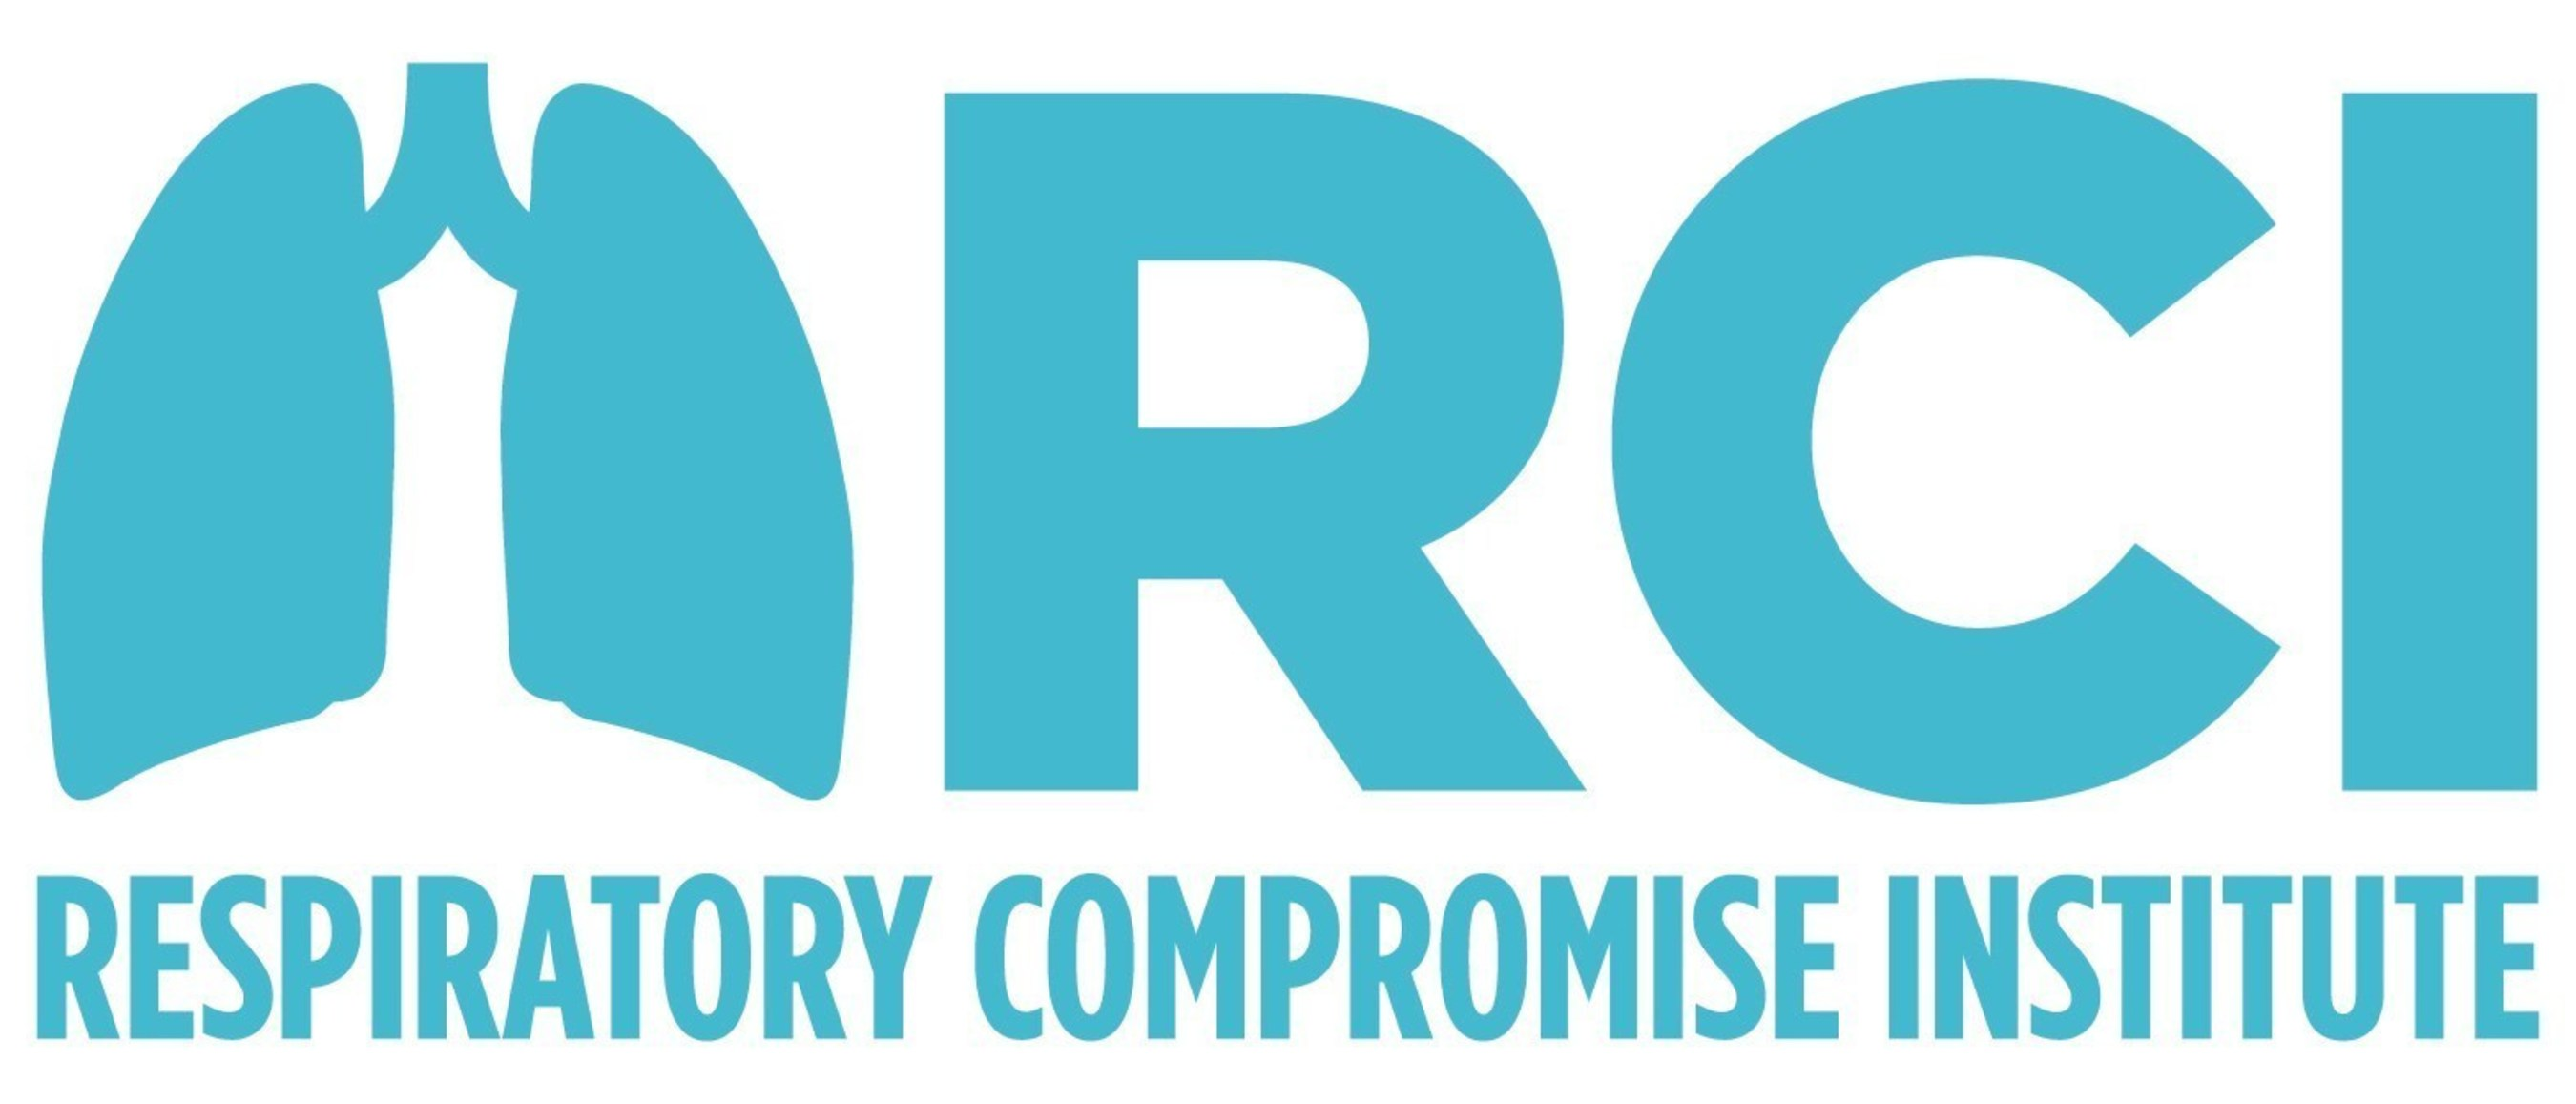 The Respiratory Compromise Institute (RCI) is a nonprofit group dedicated to improving patient health and ...